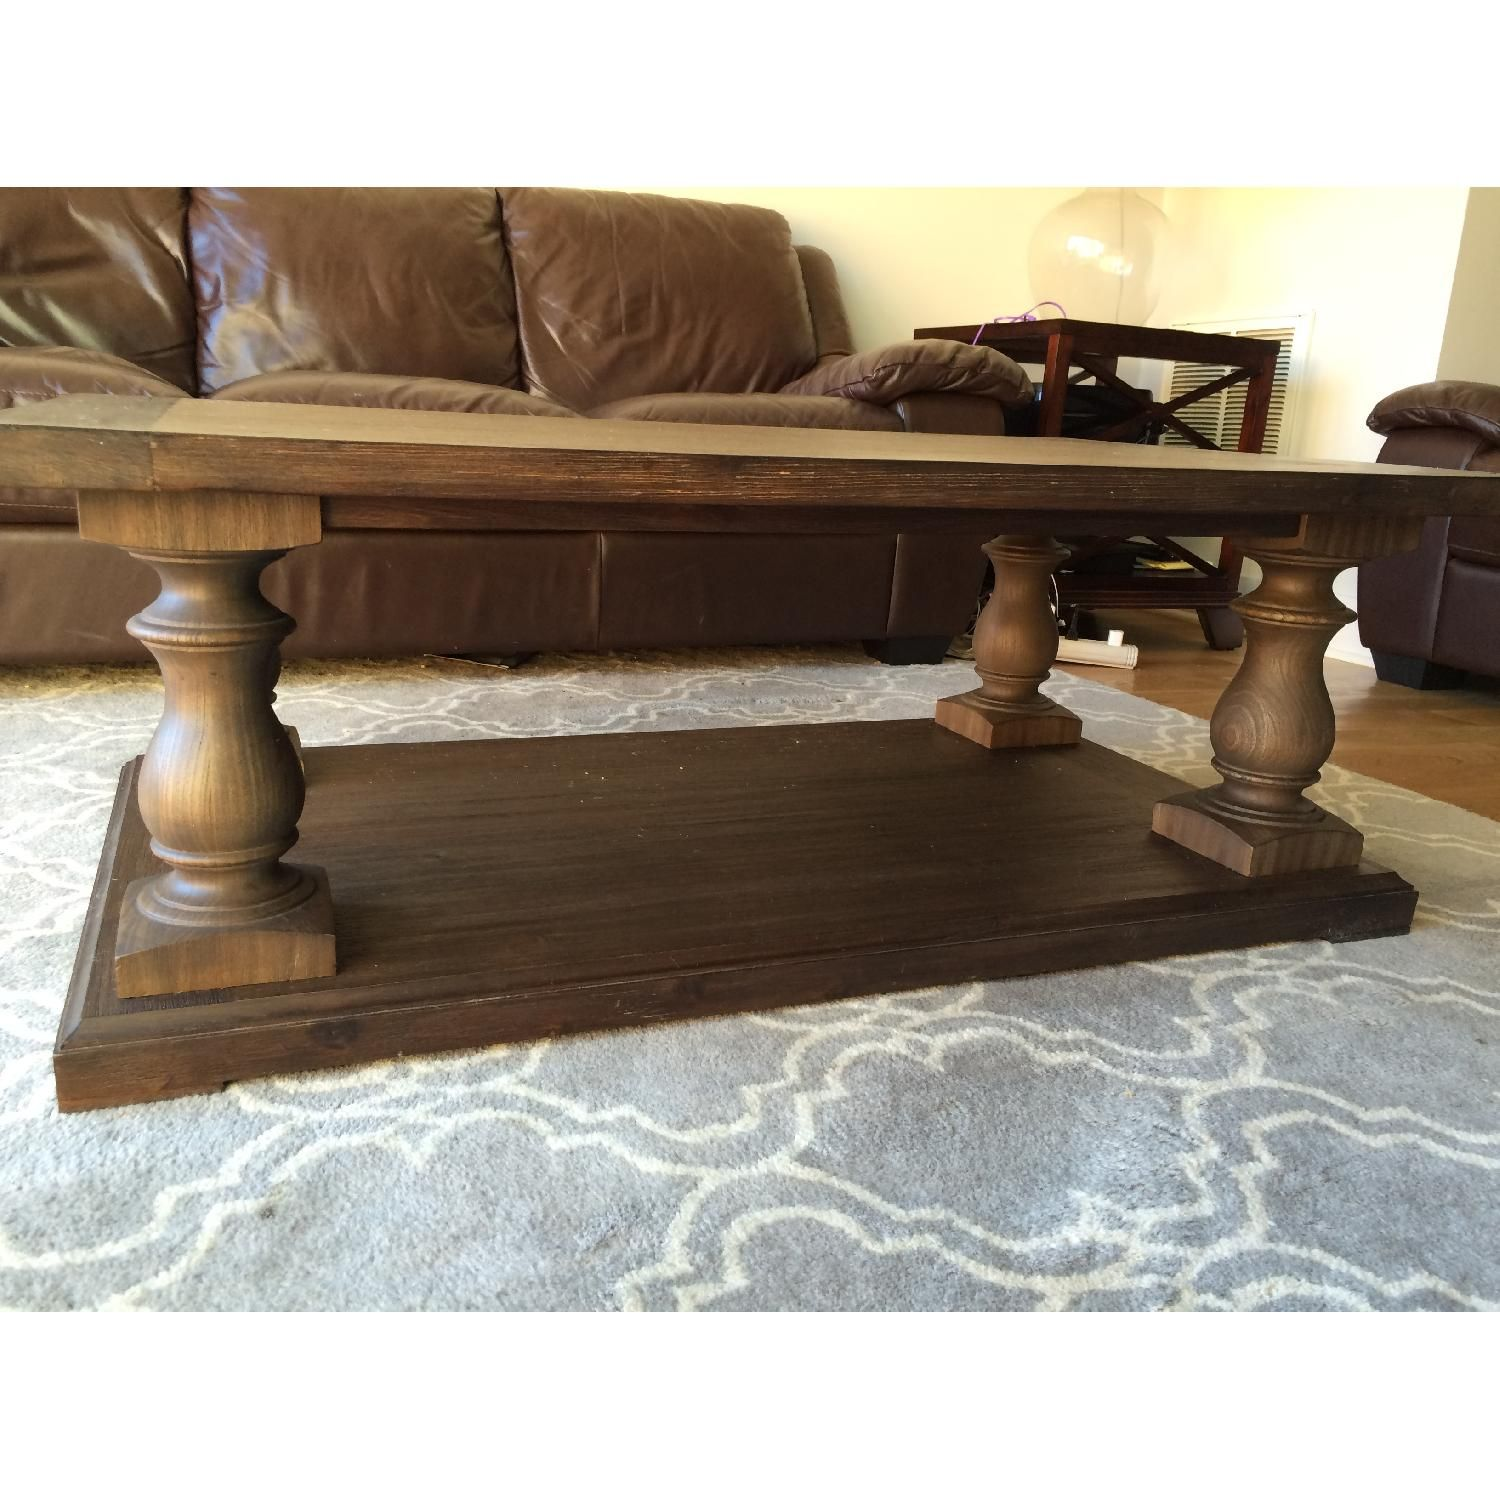 Restoration Hardware 17th Century Monastery Coffee Table In Brown